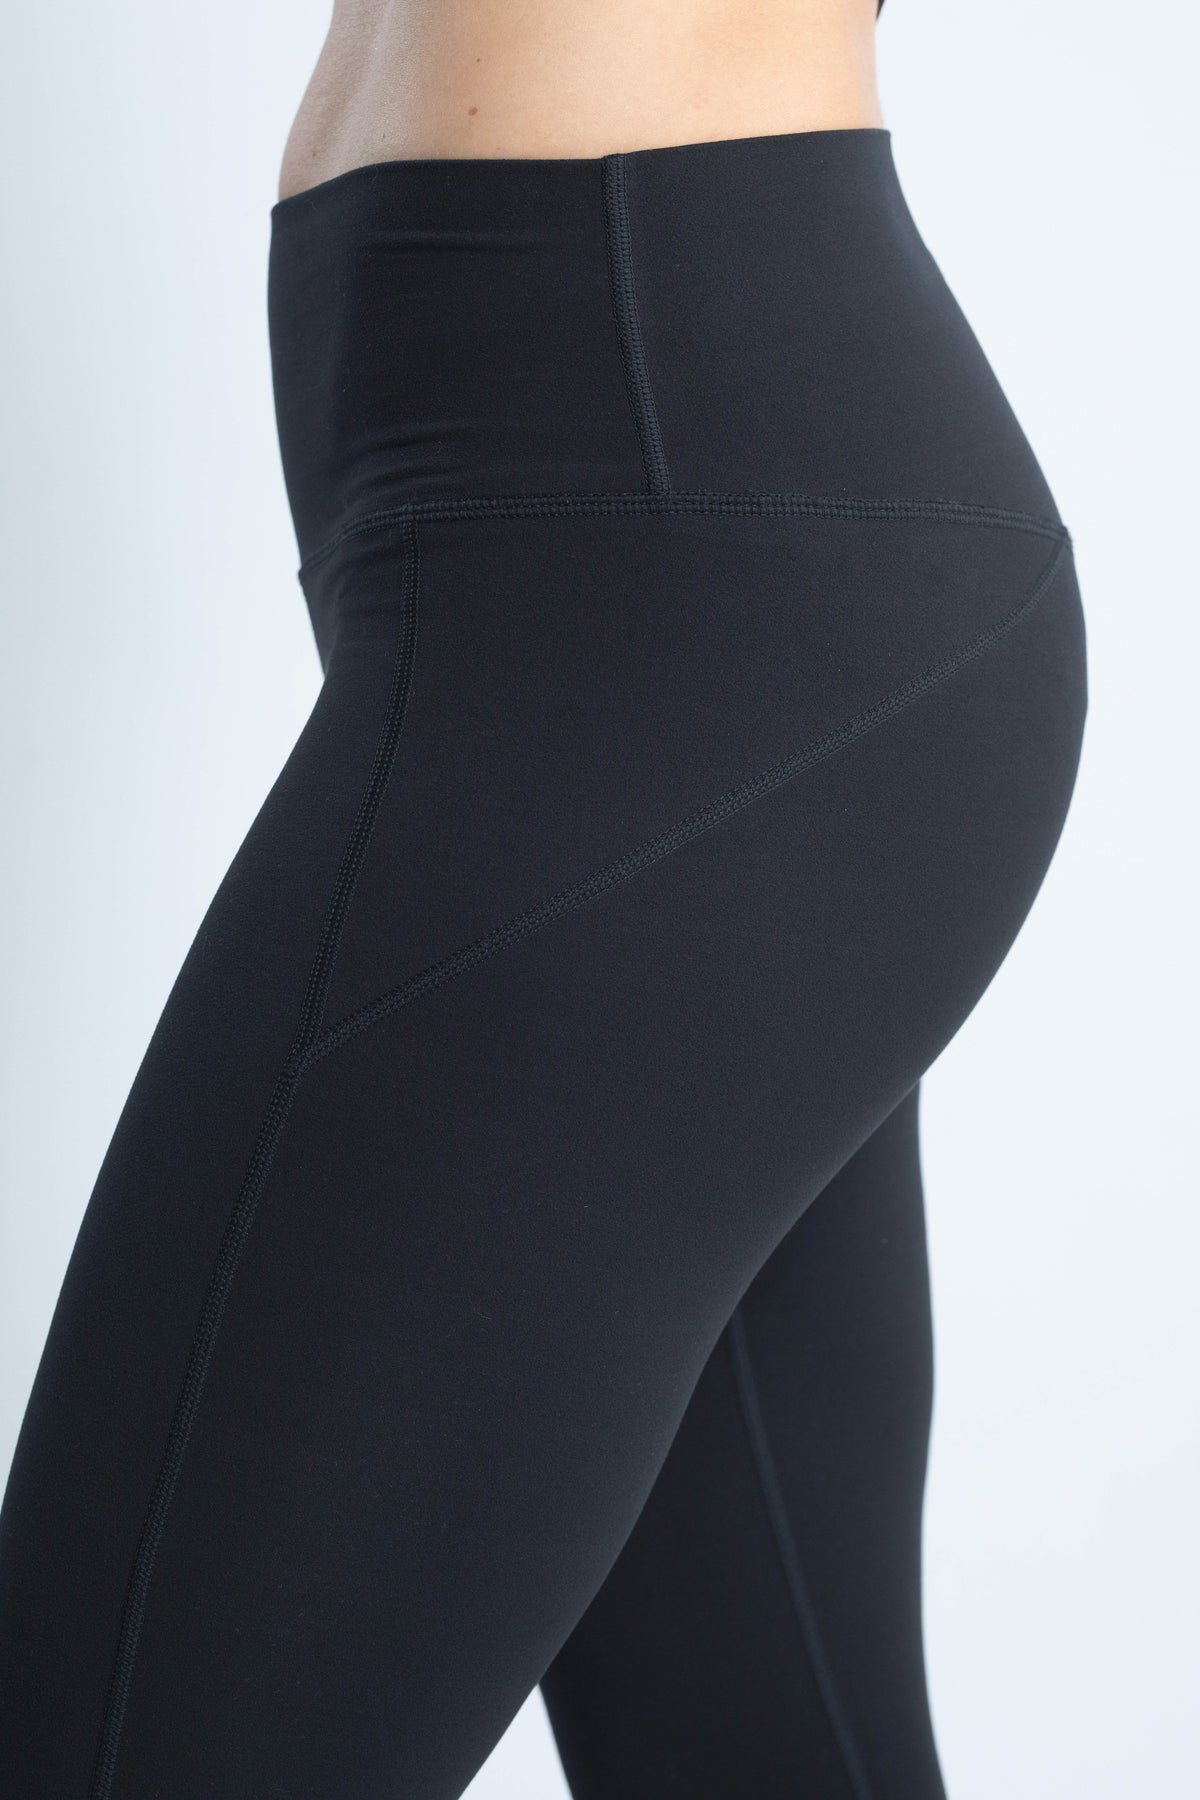 black running high performance leggings